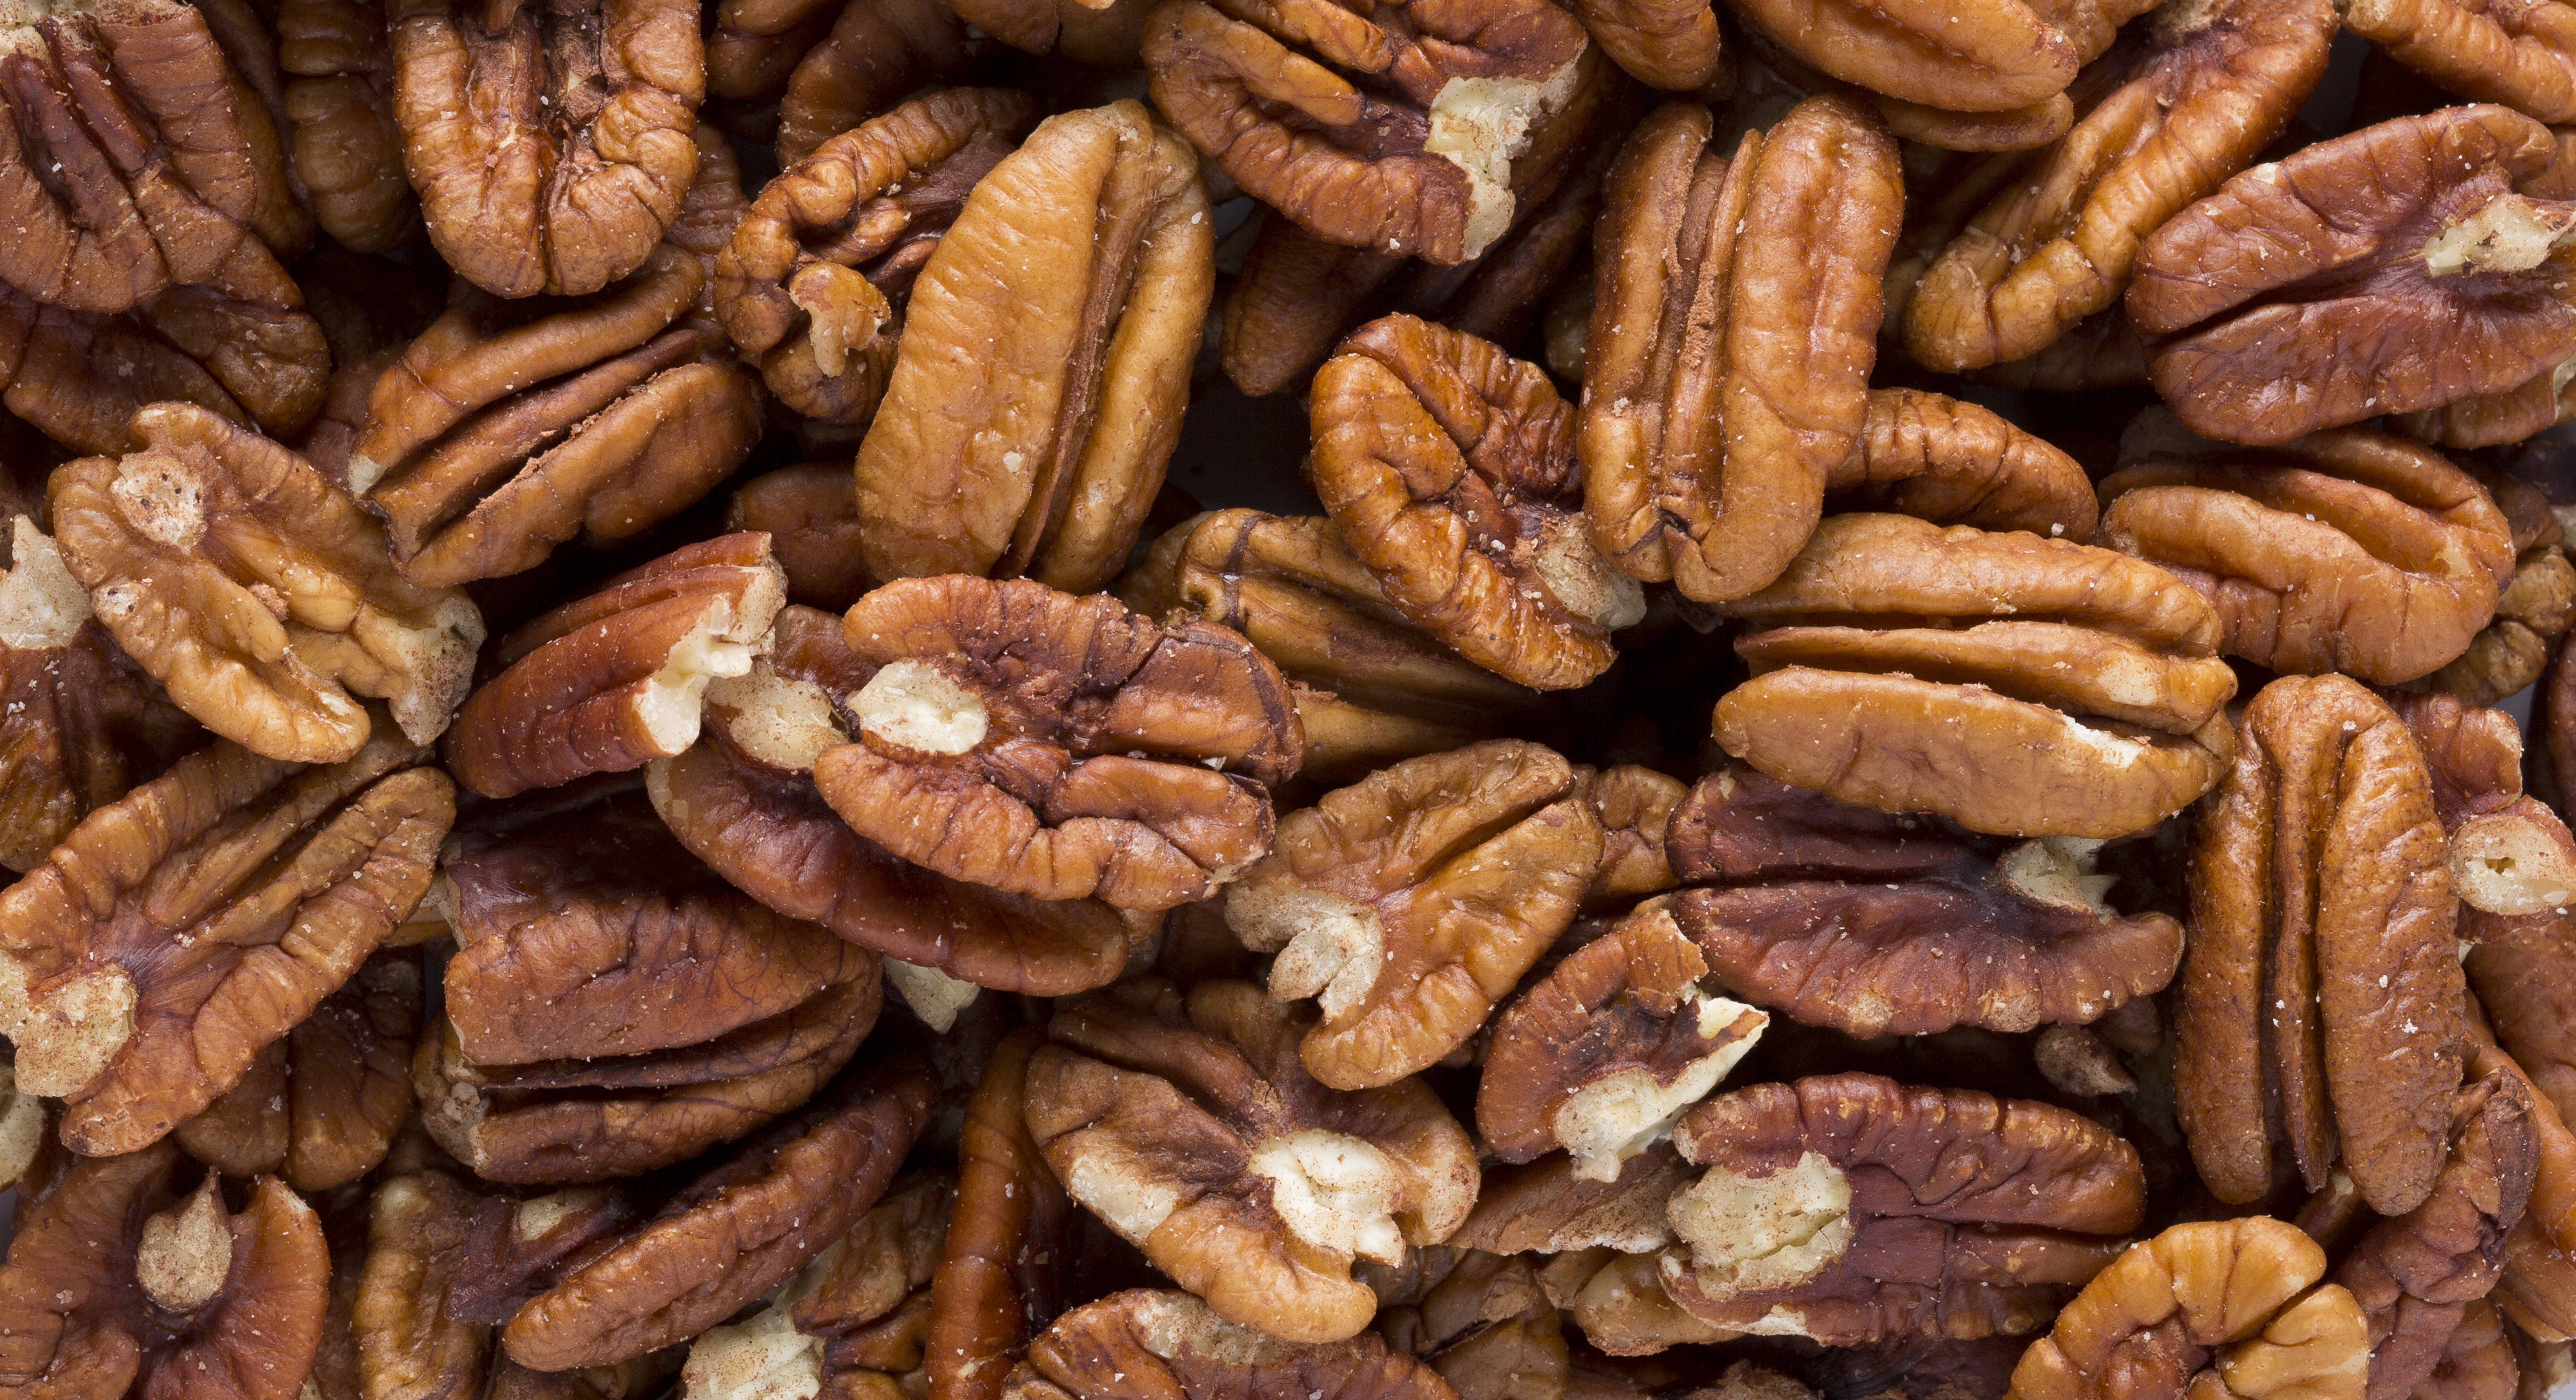 Cooking With Pecans: Recipes, Tips & More